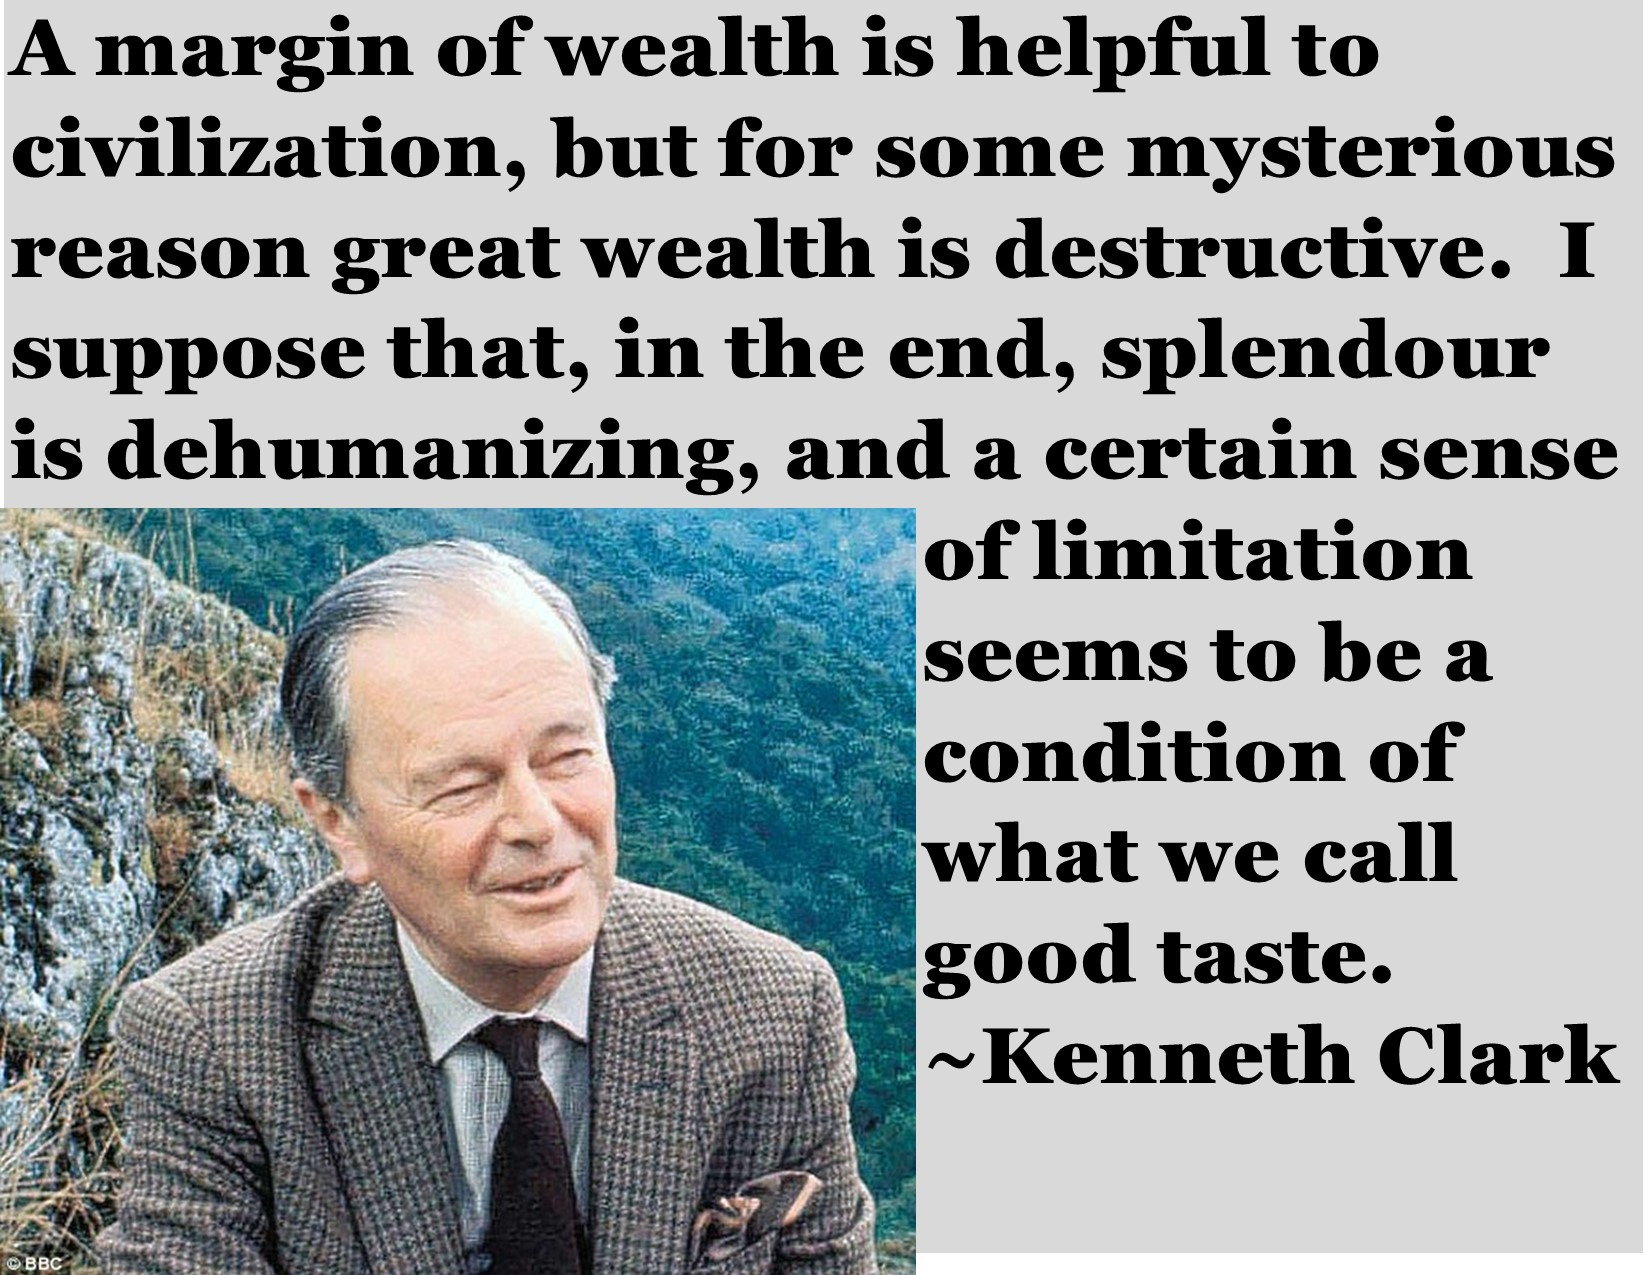 """""""A margin of wealth is helpful to civilization, but for some mysterious reason great wealth is destructive."""" ~Kenneth Clark [1650 x 1275] [OC]"""